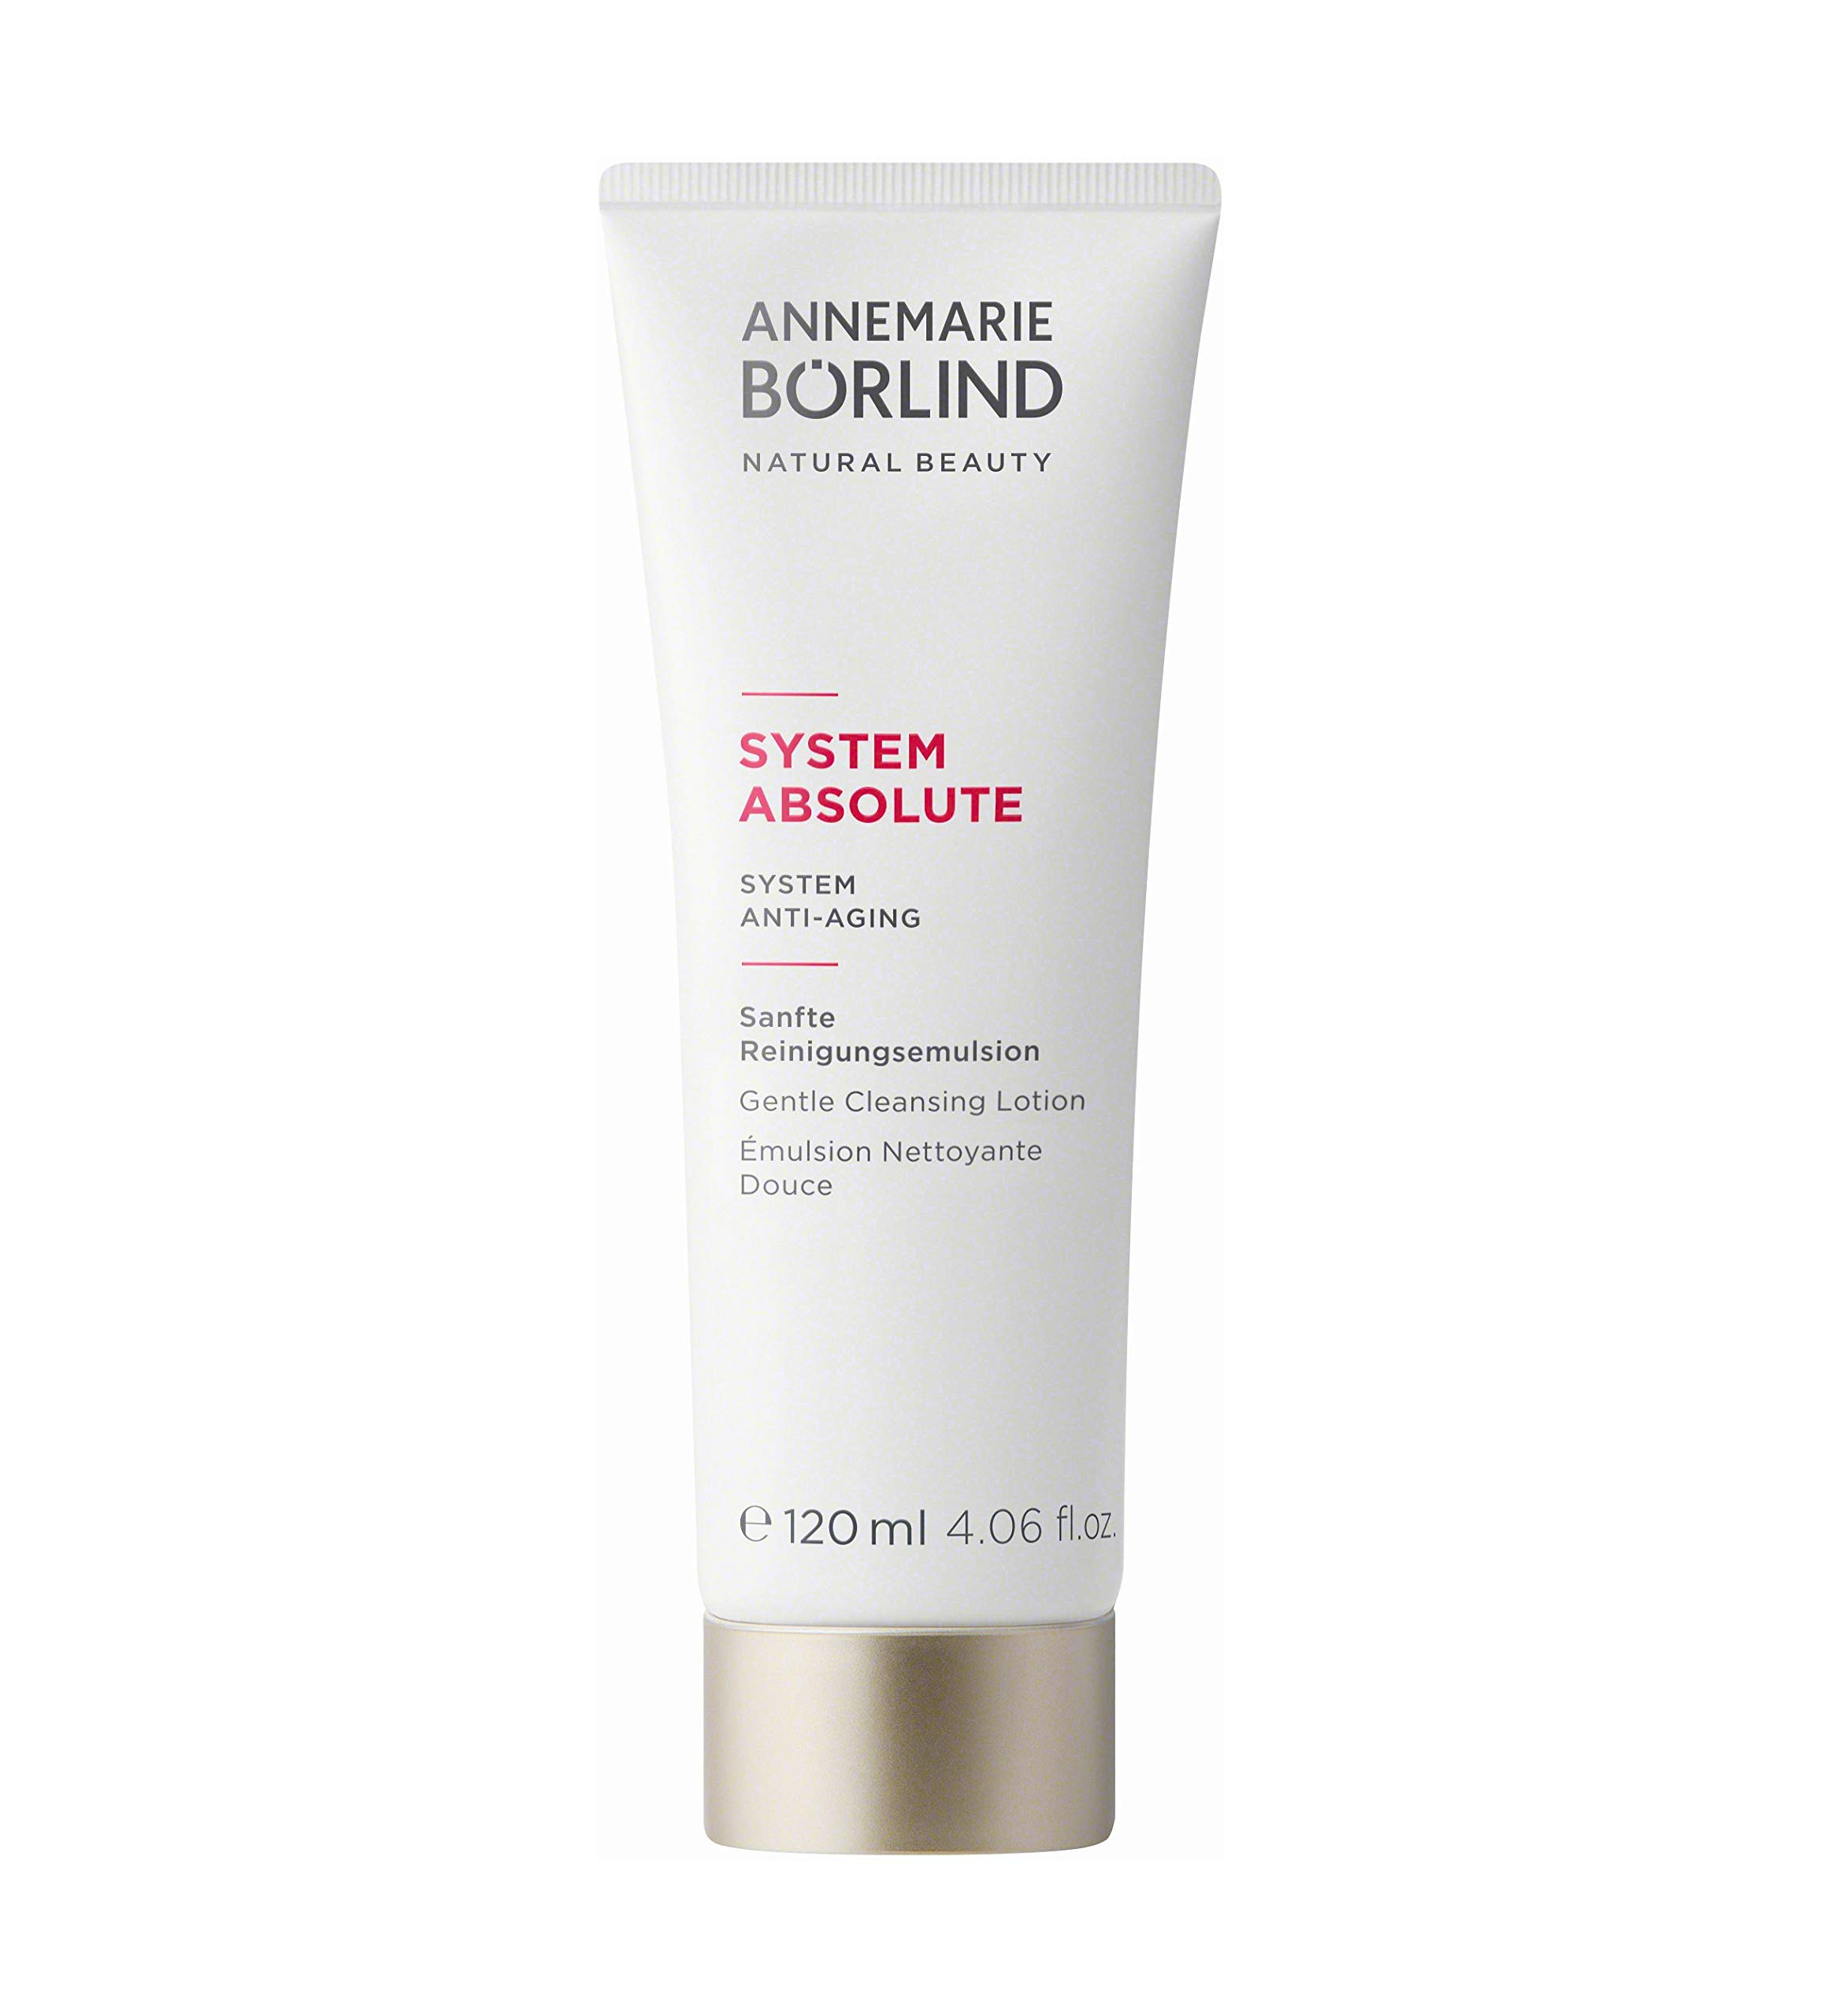 ANNEMARIE BÖRLIND - SYSTEM ABSOLUTE Gentle Cleansing Lotion - Vitamin A + C + E Natural Vegan Face Cleanser - Removes Impurities and Makeup with Mild Tensides - 4.06 Fl. Oz.